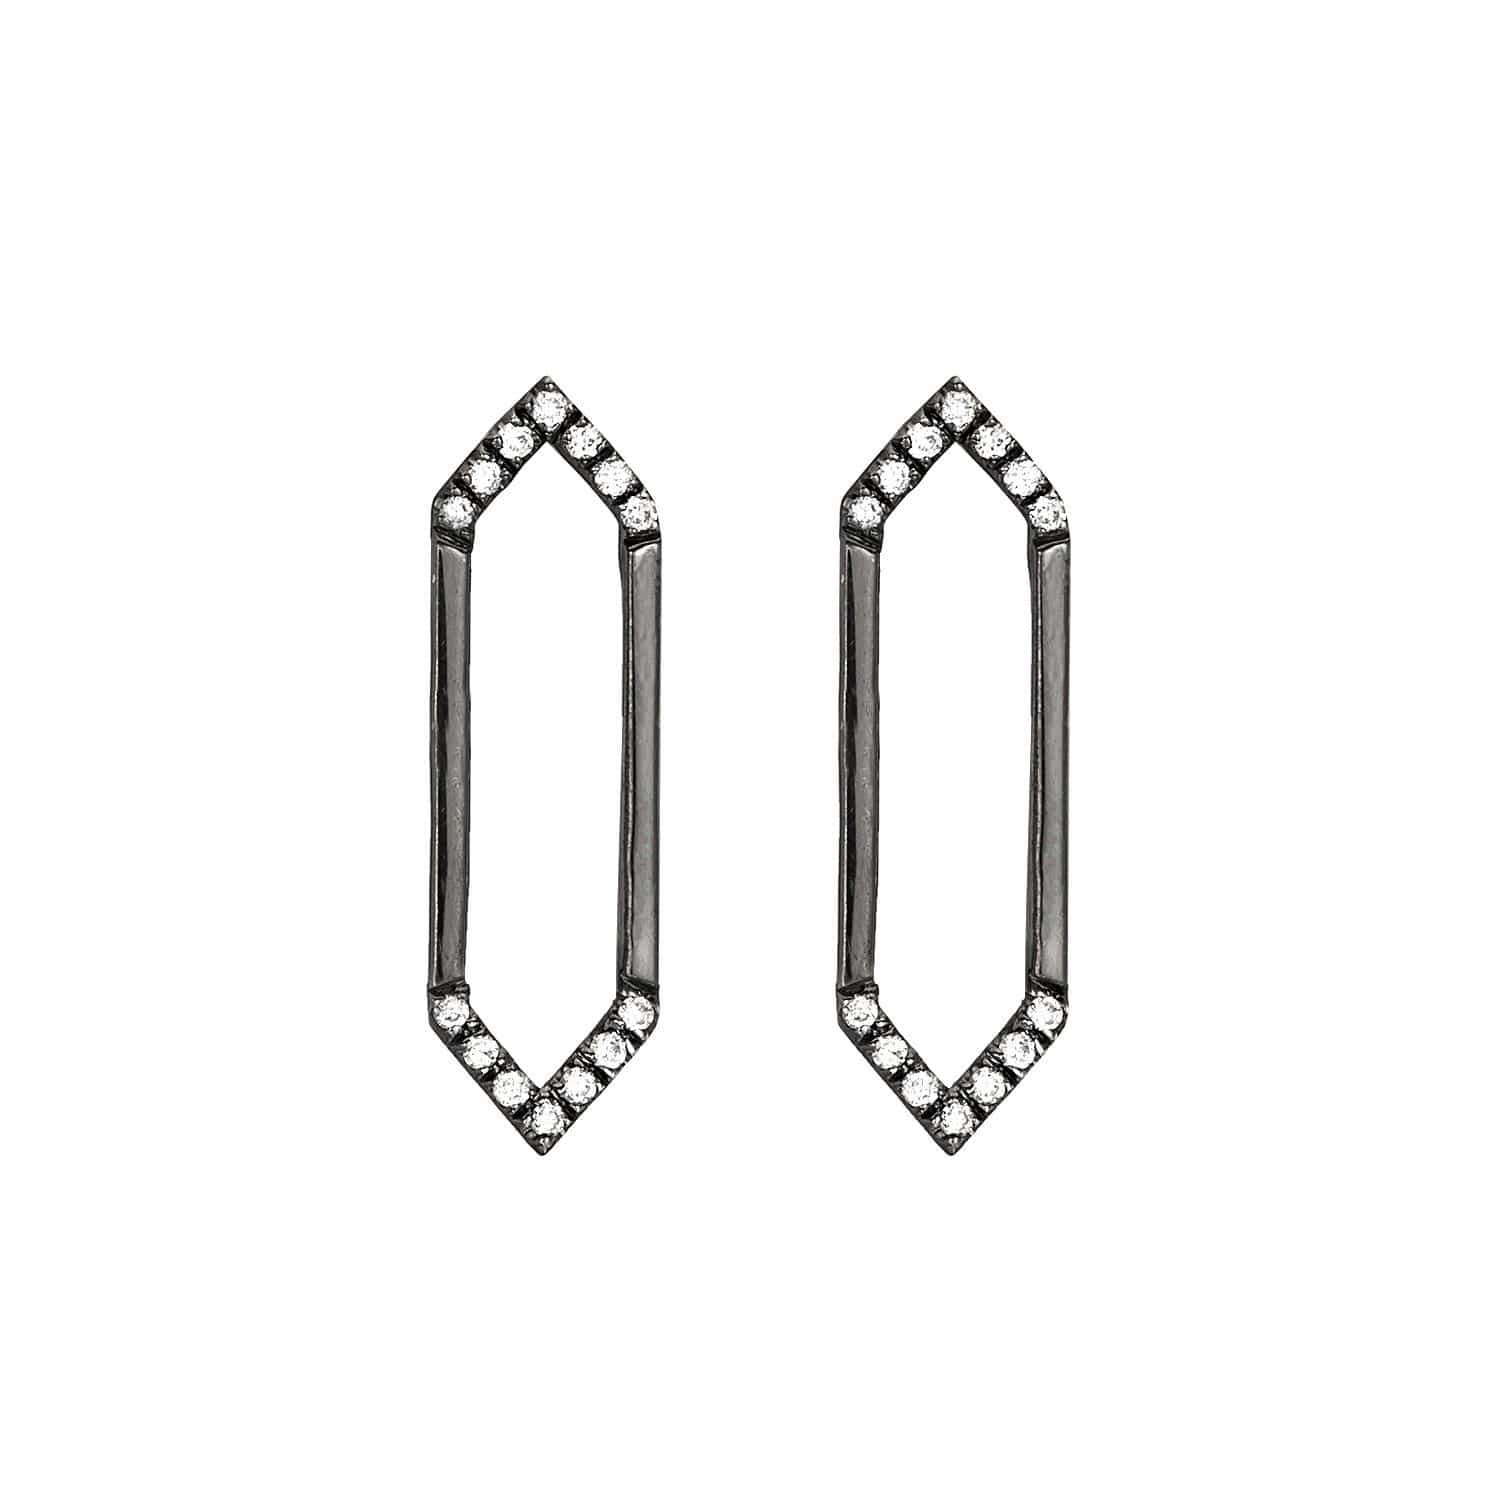 Medium Marquis Earrings | Black Gold with Diamonds on Points